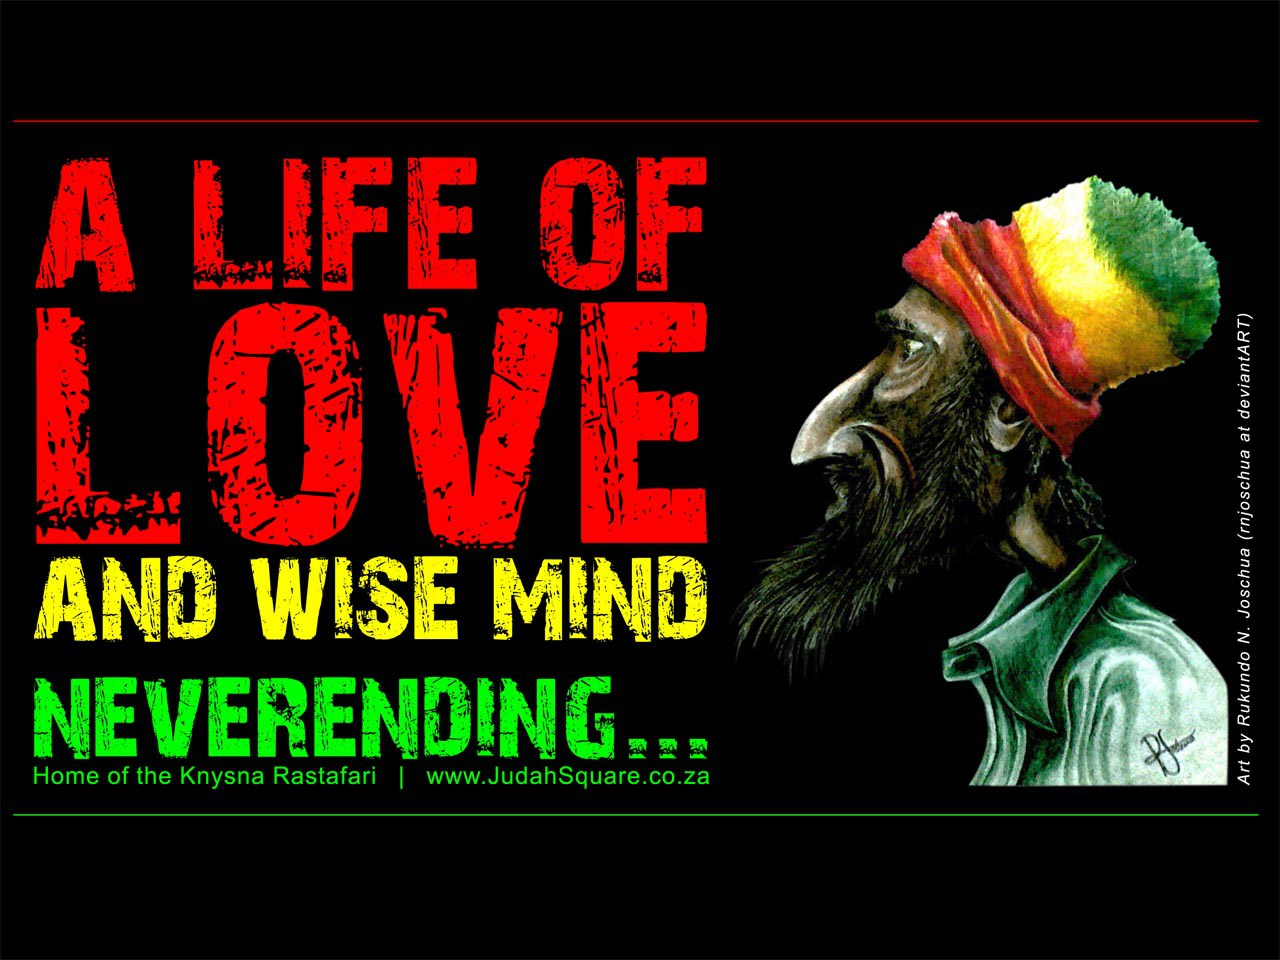 Download rasta love wallpaper gallery - Rasta bob live wallpaper free download ...